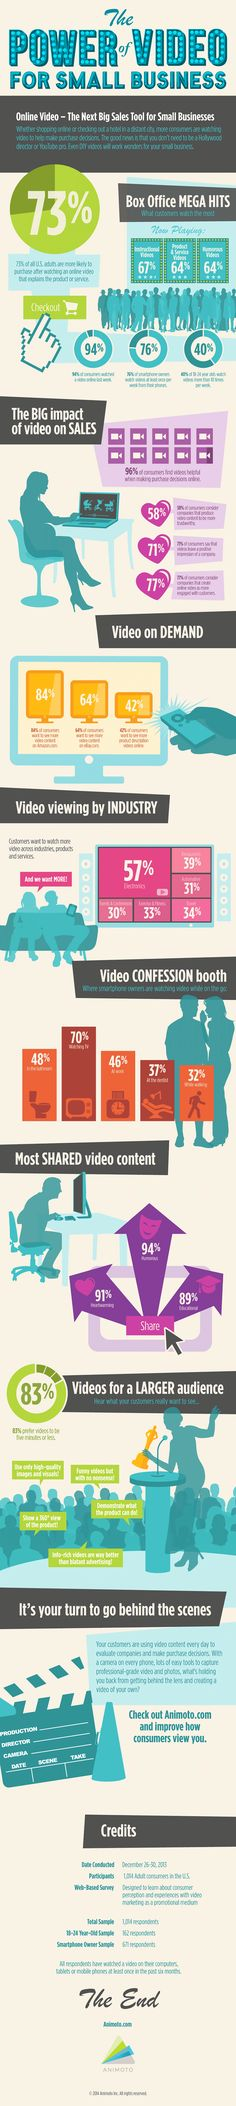 Videos have become an important content and marketing tool for small businesses. For a growing number of people, videos have also become their means to earn a lot of money online. Read the article Why Videos Should Be Part of Your Online Marketing Strategies in 2016 http://www.powerhomebiz.com/internet-marketing/strategies/why-videos-should-be-part-of-your-online-marketing-strategies-in-2016.htm